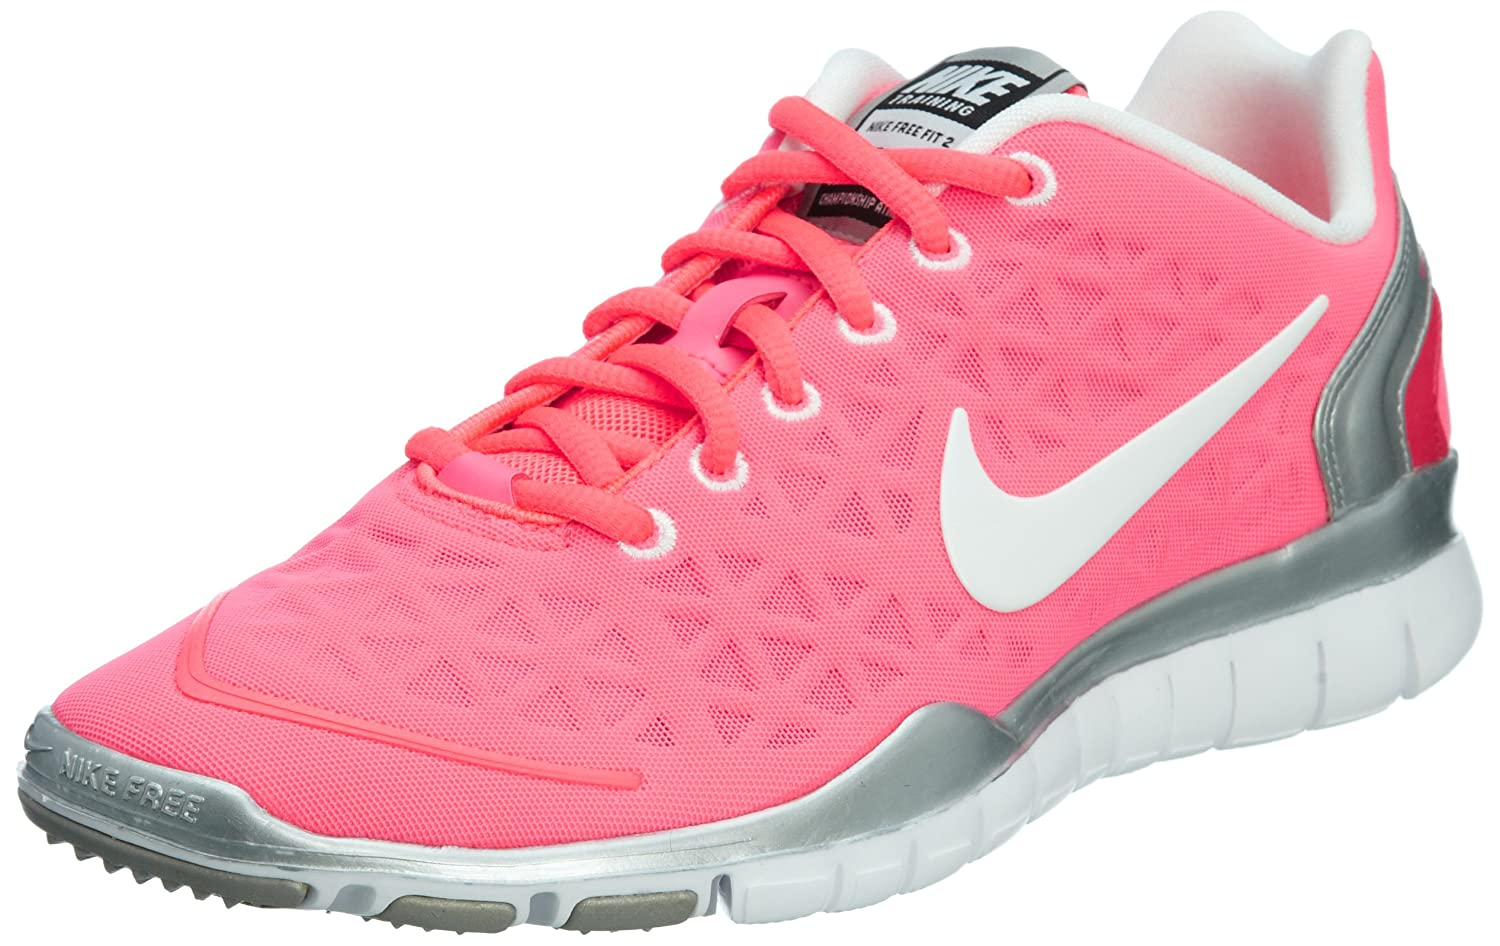 info for 90684 316ec Amazon.com   NIKE Wmns Free TR Fit 2 Hot Punch Silver Womens Training Shoes  487789-601  US size 9.5    Shoes